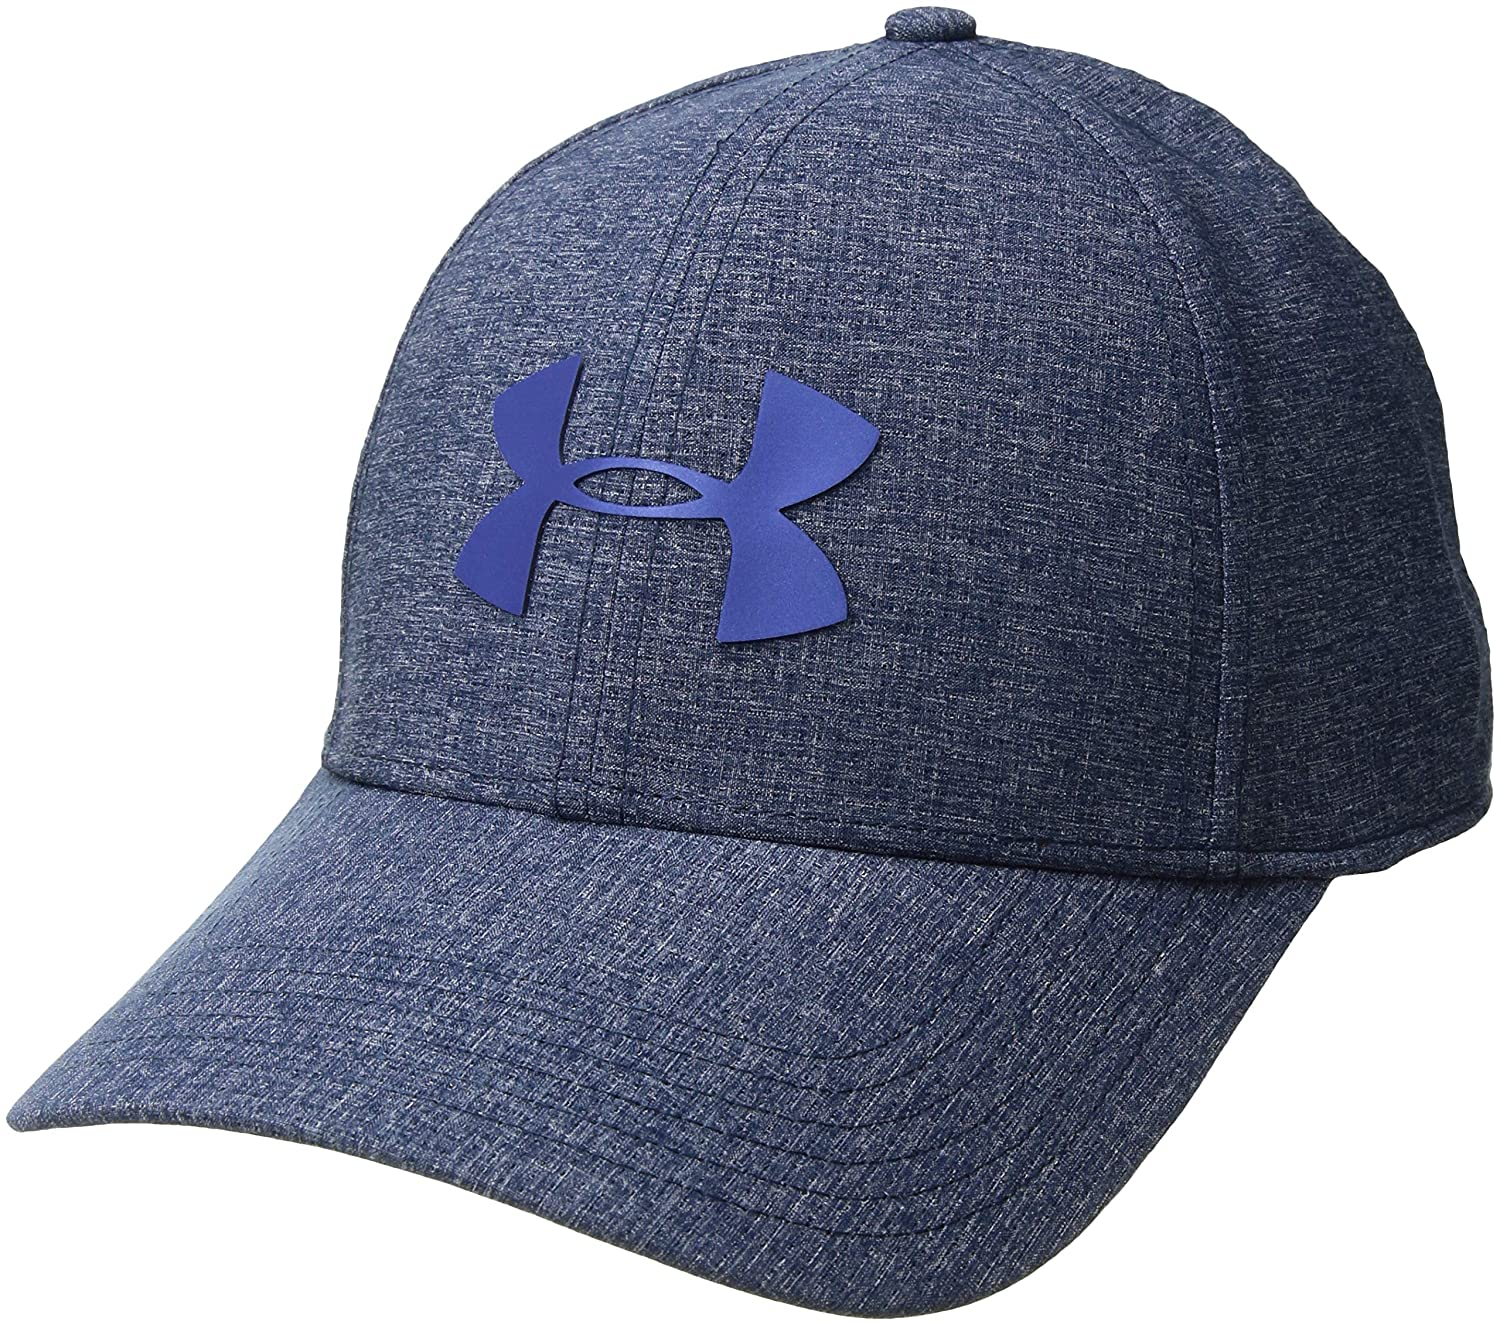 Under Armour Men s CoolSwitch Av 2.0 Cap  Amazon.ca  Sports   Outdoors 5b9cbc6680d7